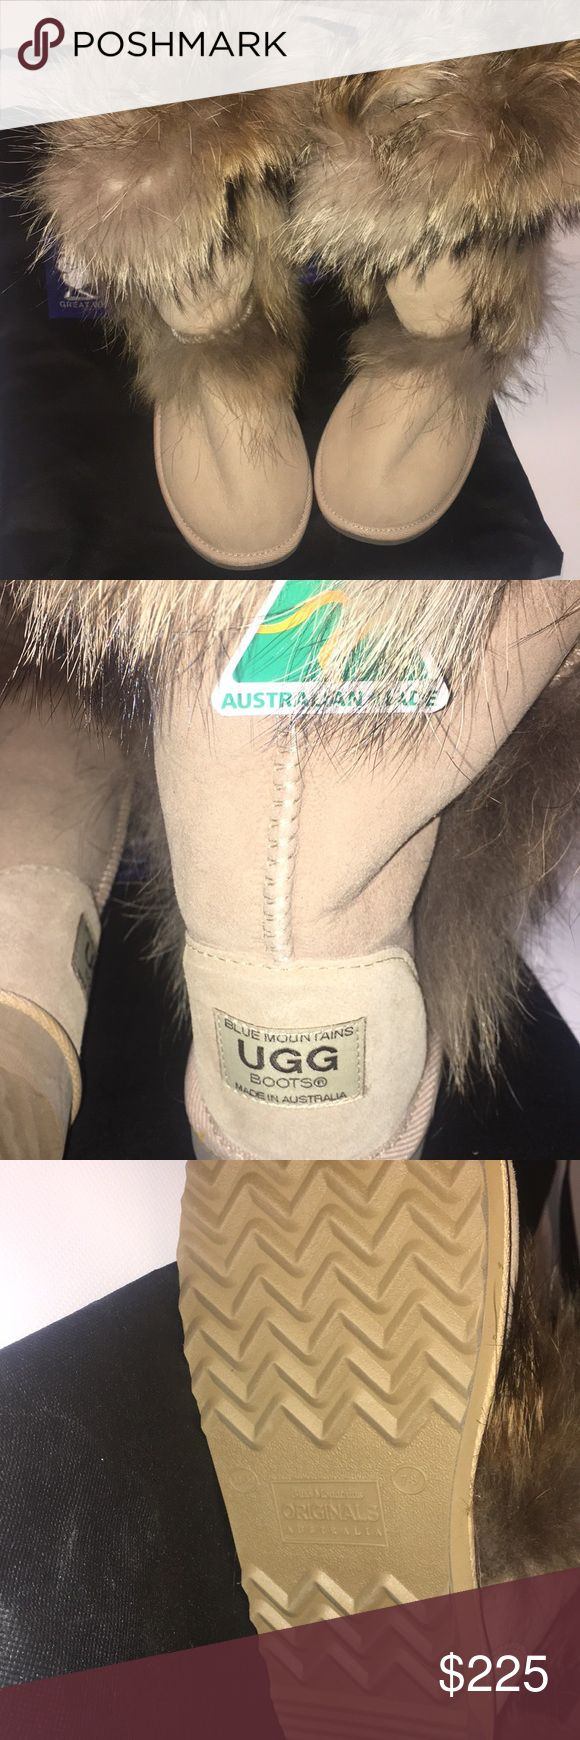 100% AUTHENTIC Ugg Boots W/ REAL Fox Fur Lining 100% AUTHENTIC Ugg Boots W/ REAL Fox Fur Lining  There is NO BOX as these were bought DIRECTLY in Australia. 100% AUTHENTIC. BRAND NEW & NEVER WORN.   Serious Offers ONLY  Women's Size 8 UGG Shoes Winter & Rain Boots